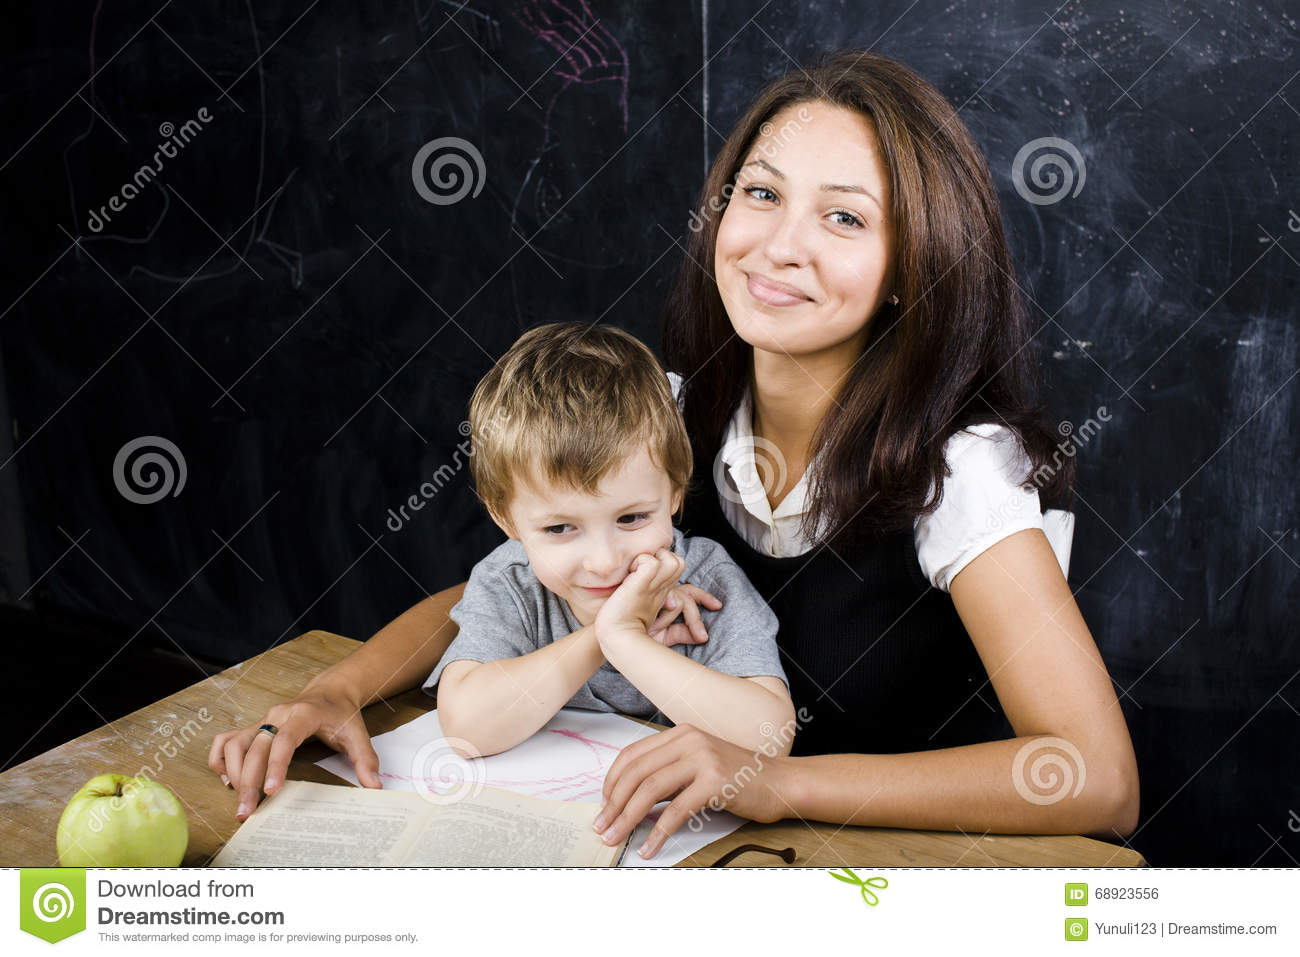 Image result for images of a  teacher holding a hand of a small boy